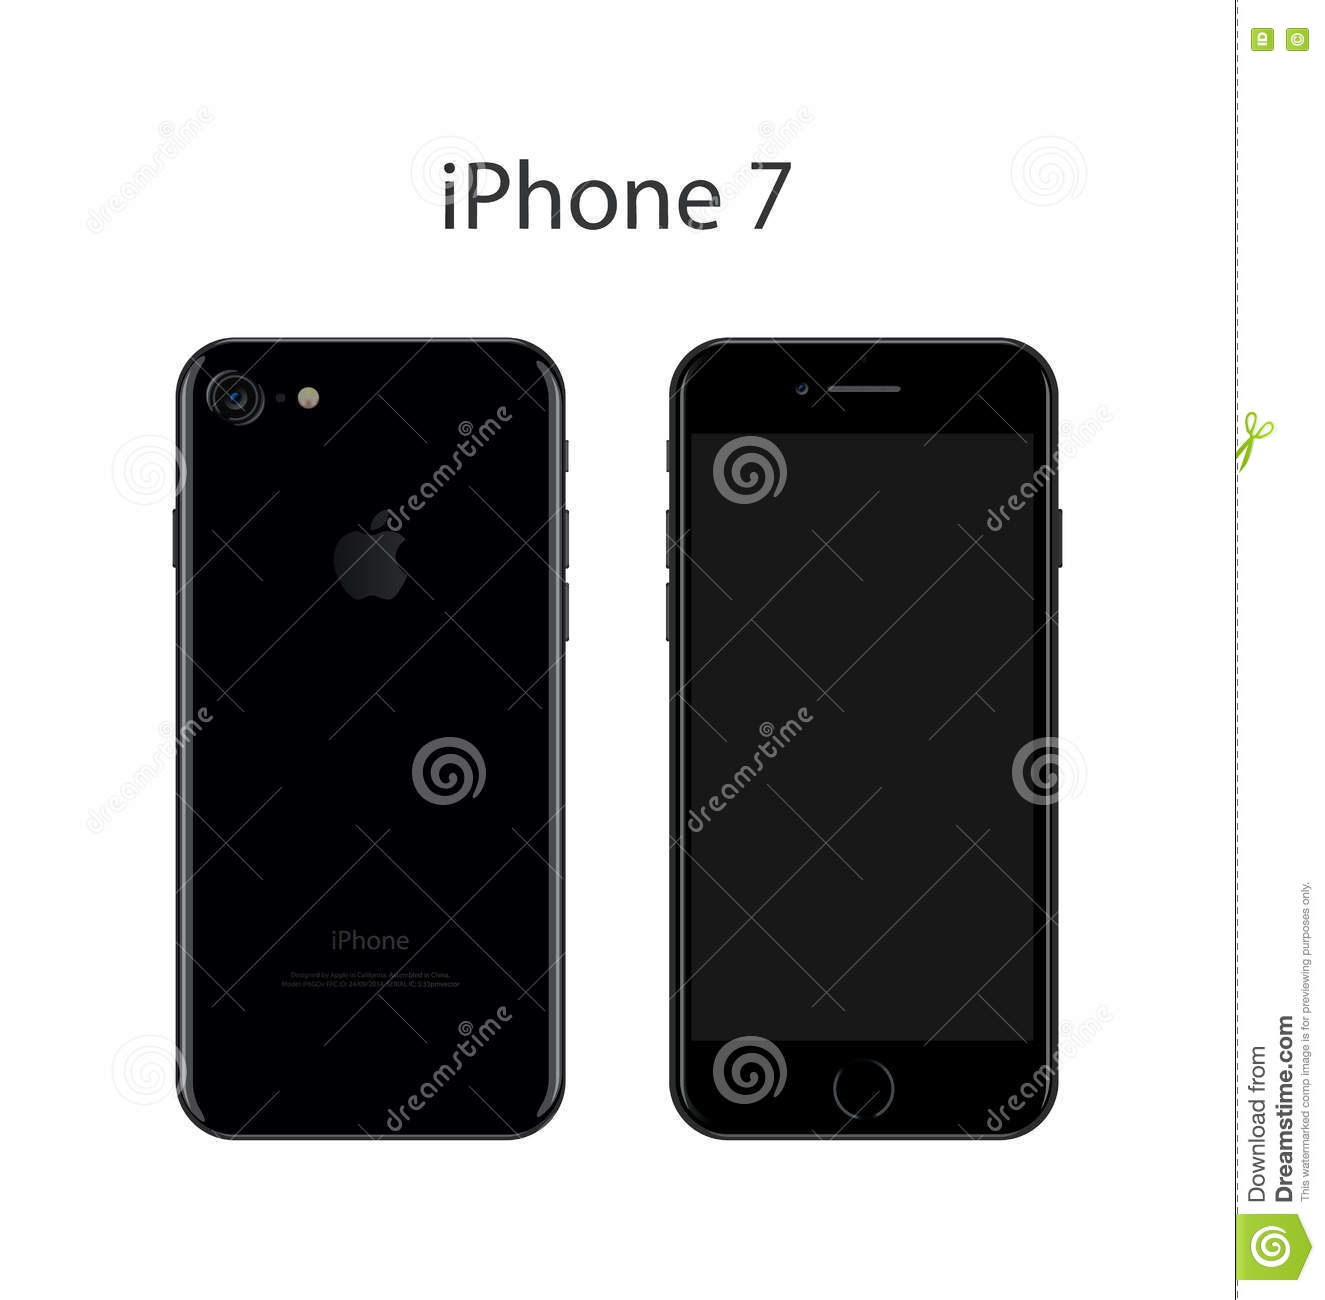 Iphone 7 vector illustration editorial stock image for Iphone 7 architecture